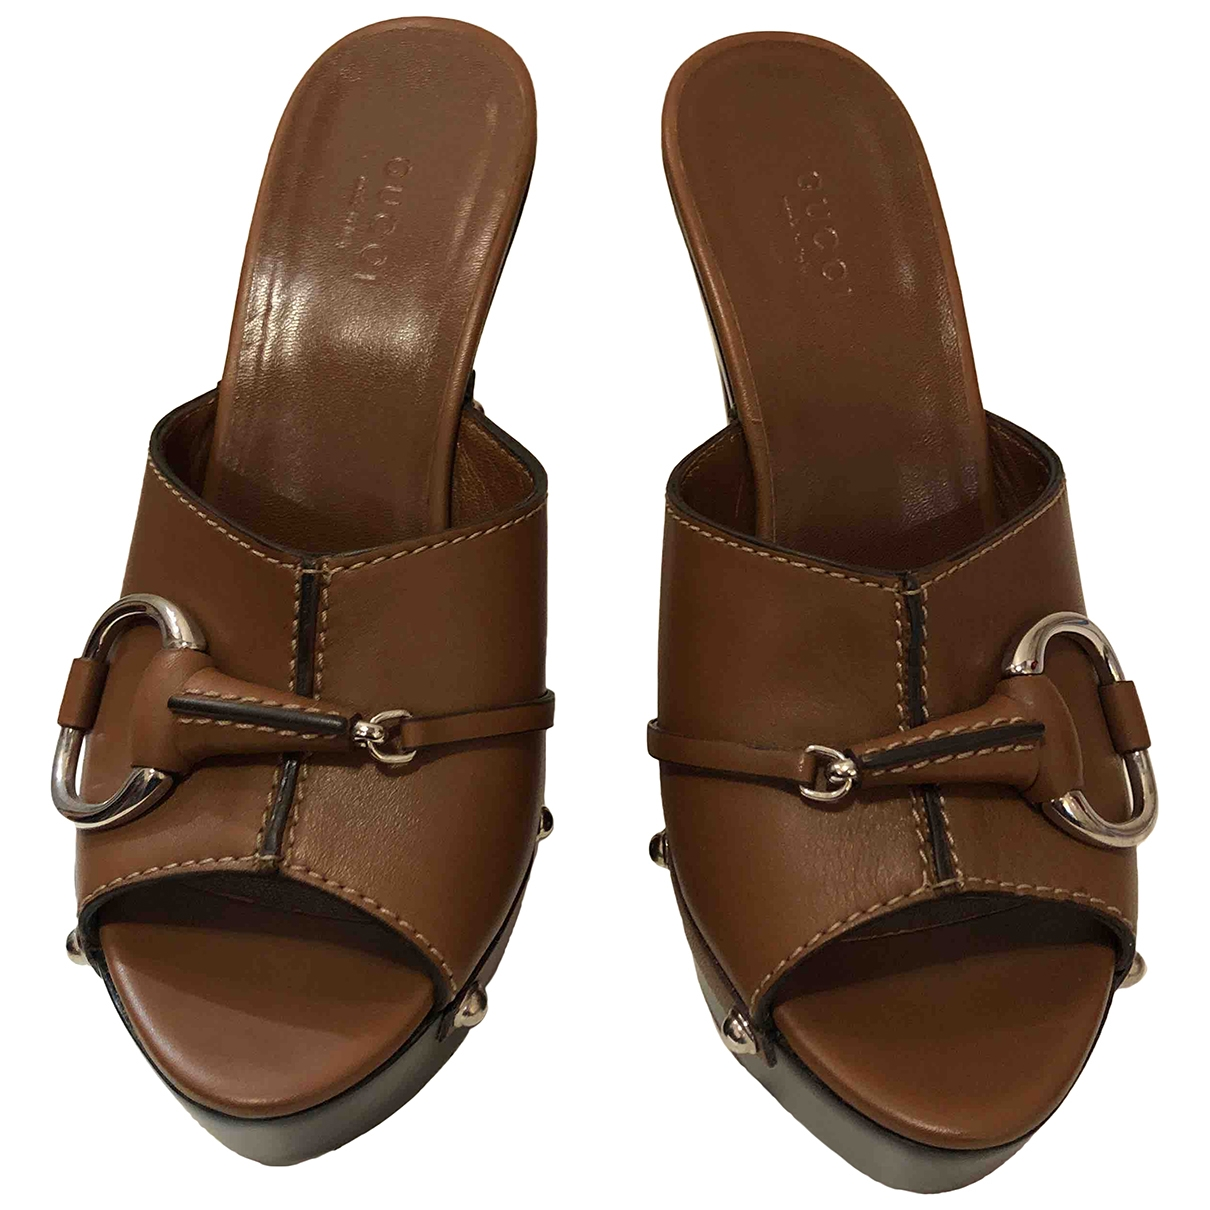 Gucci \N Camel Leather Mules & Clogs for Women 36 EU